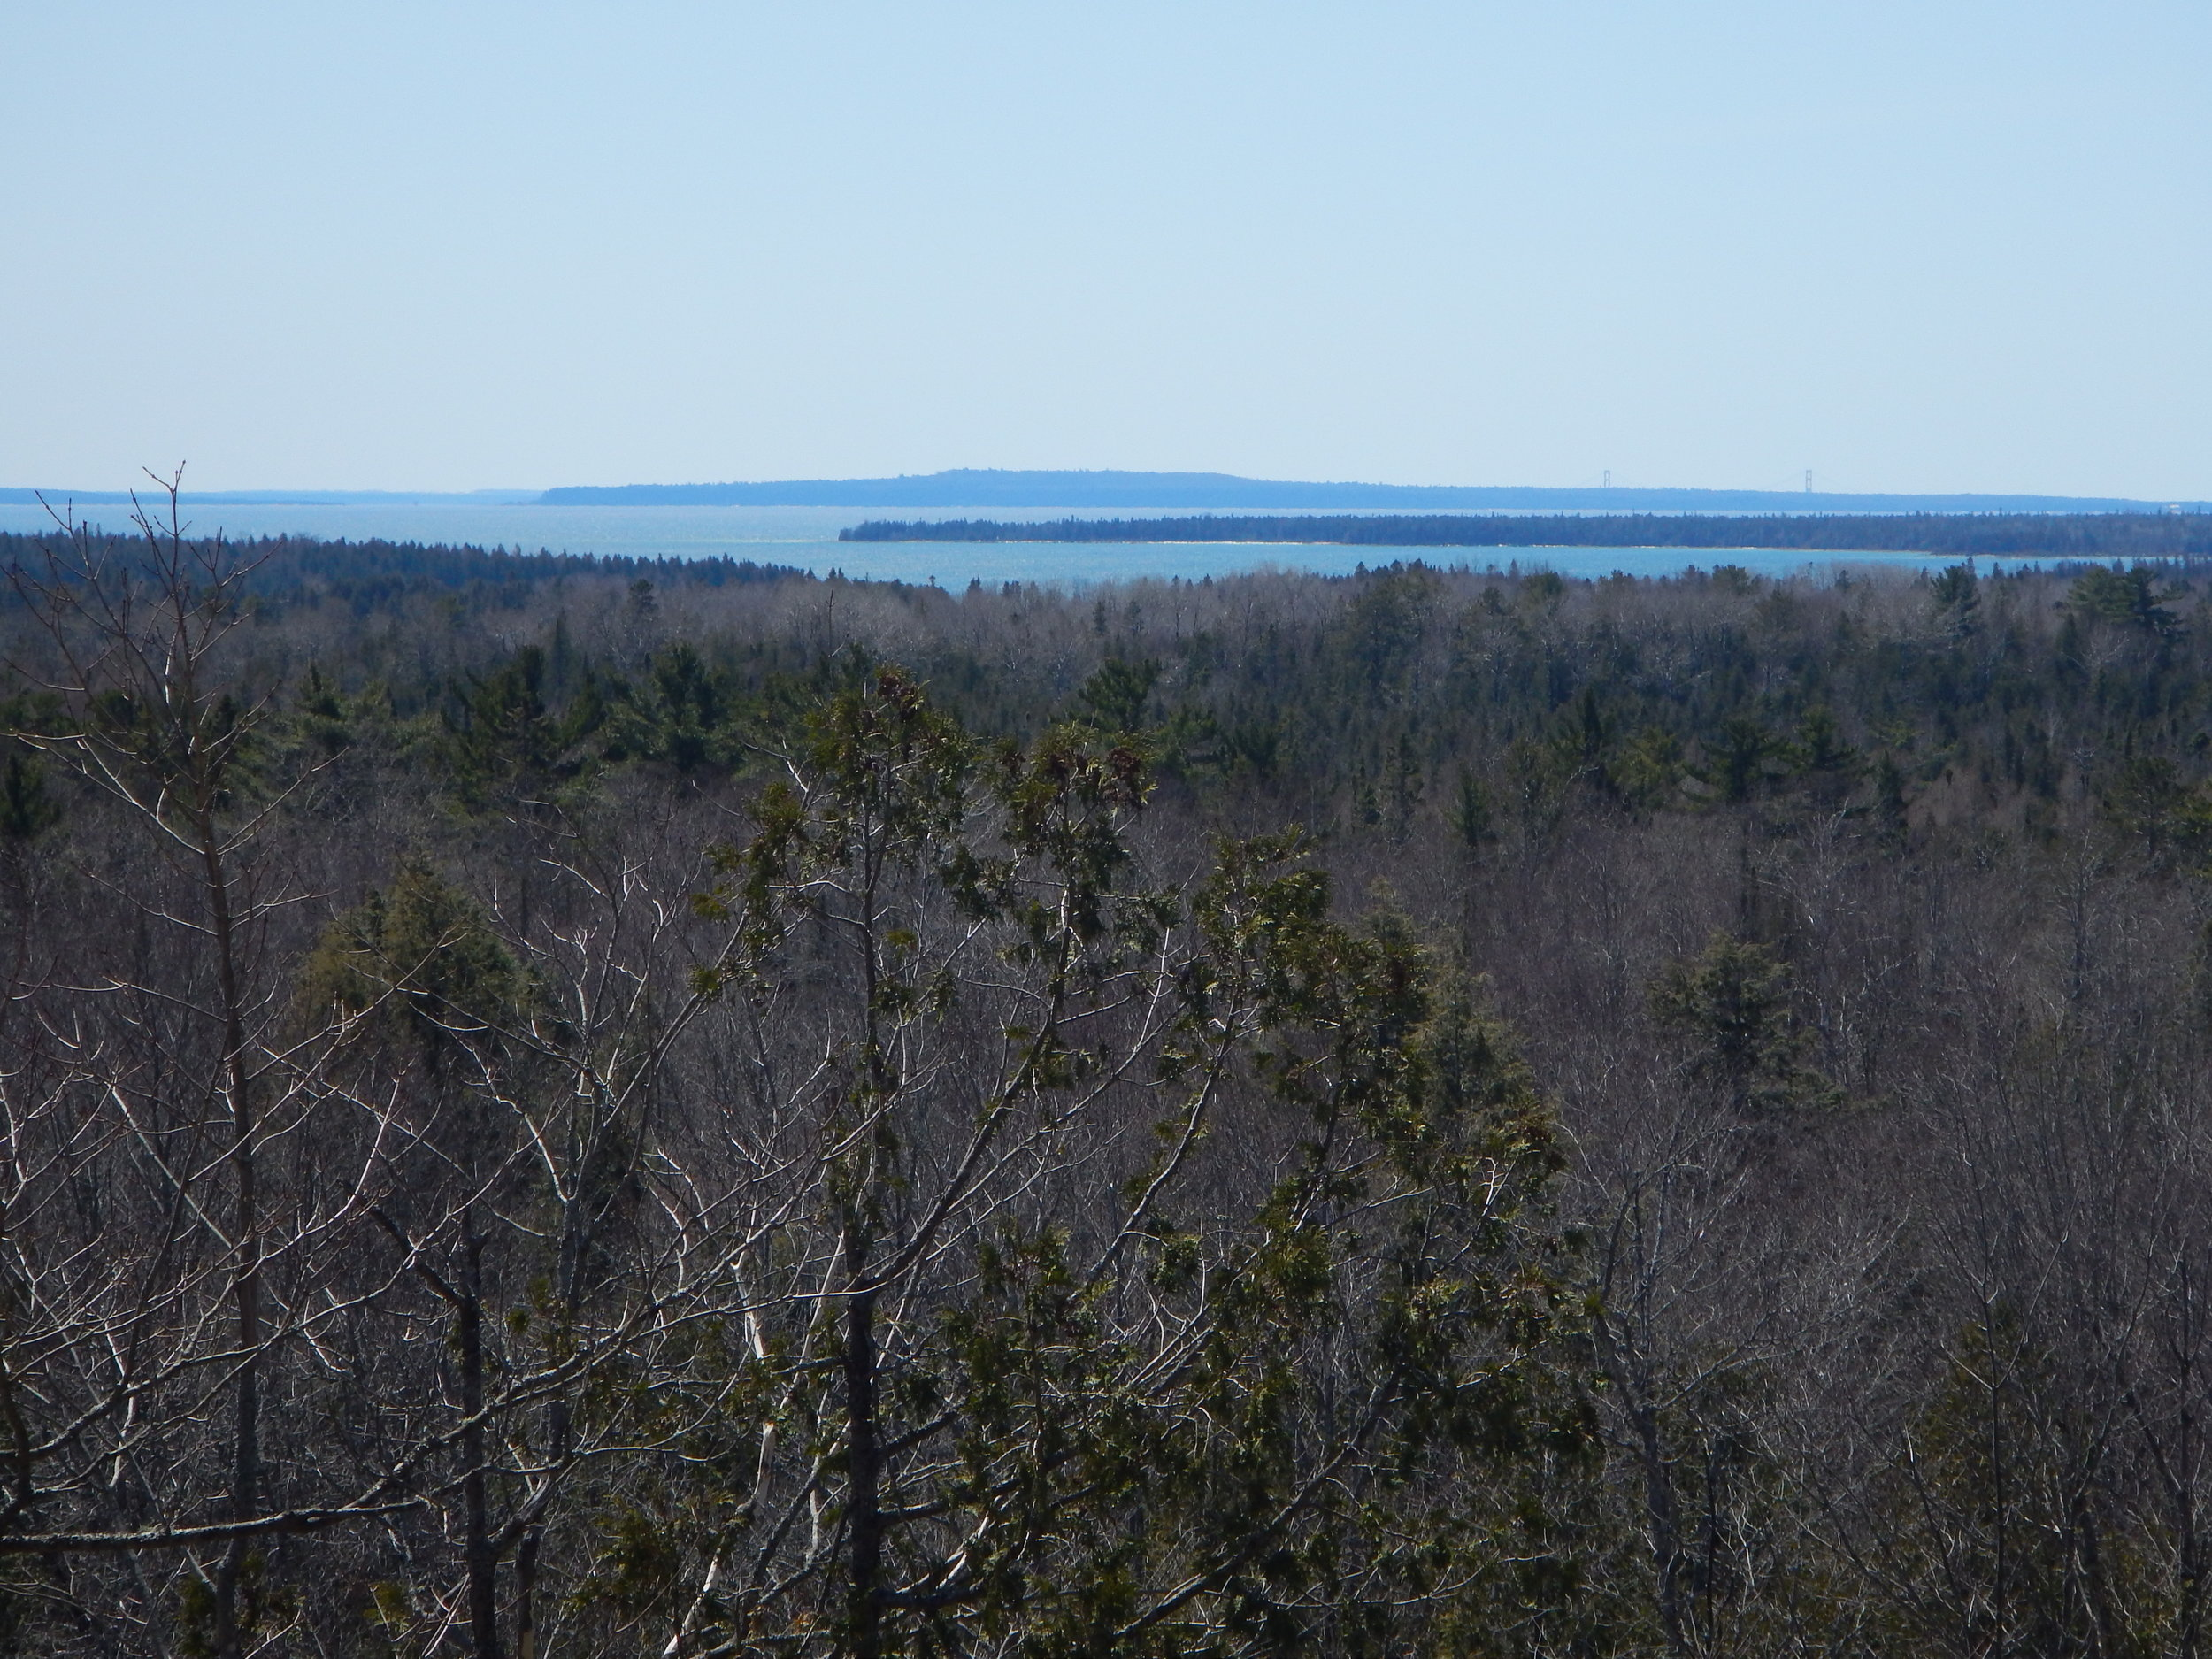 View of Mackinac Island, The Mackinac Bridge and The West Entrance from the top of Peekaboo Hill.